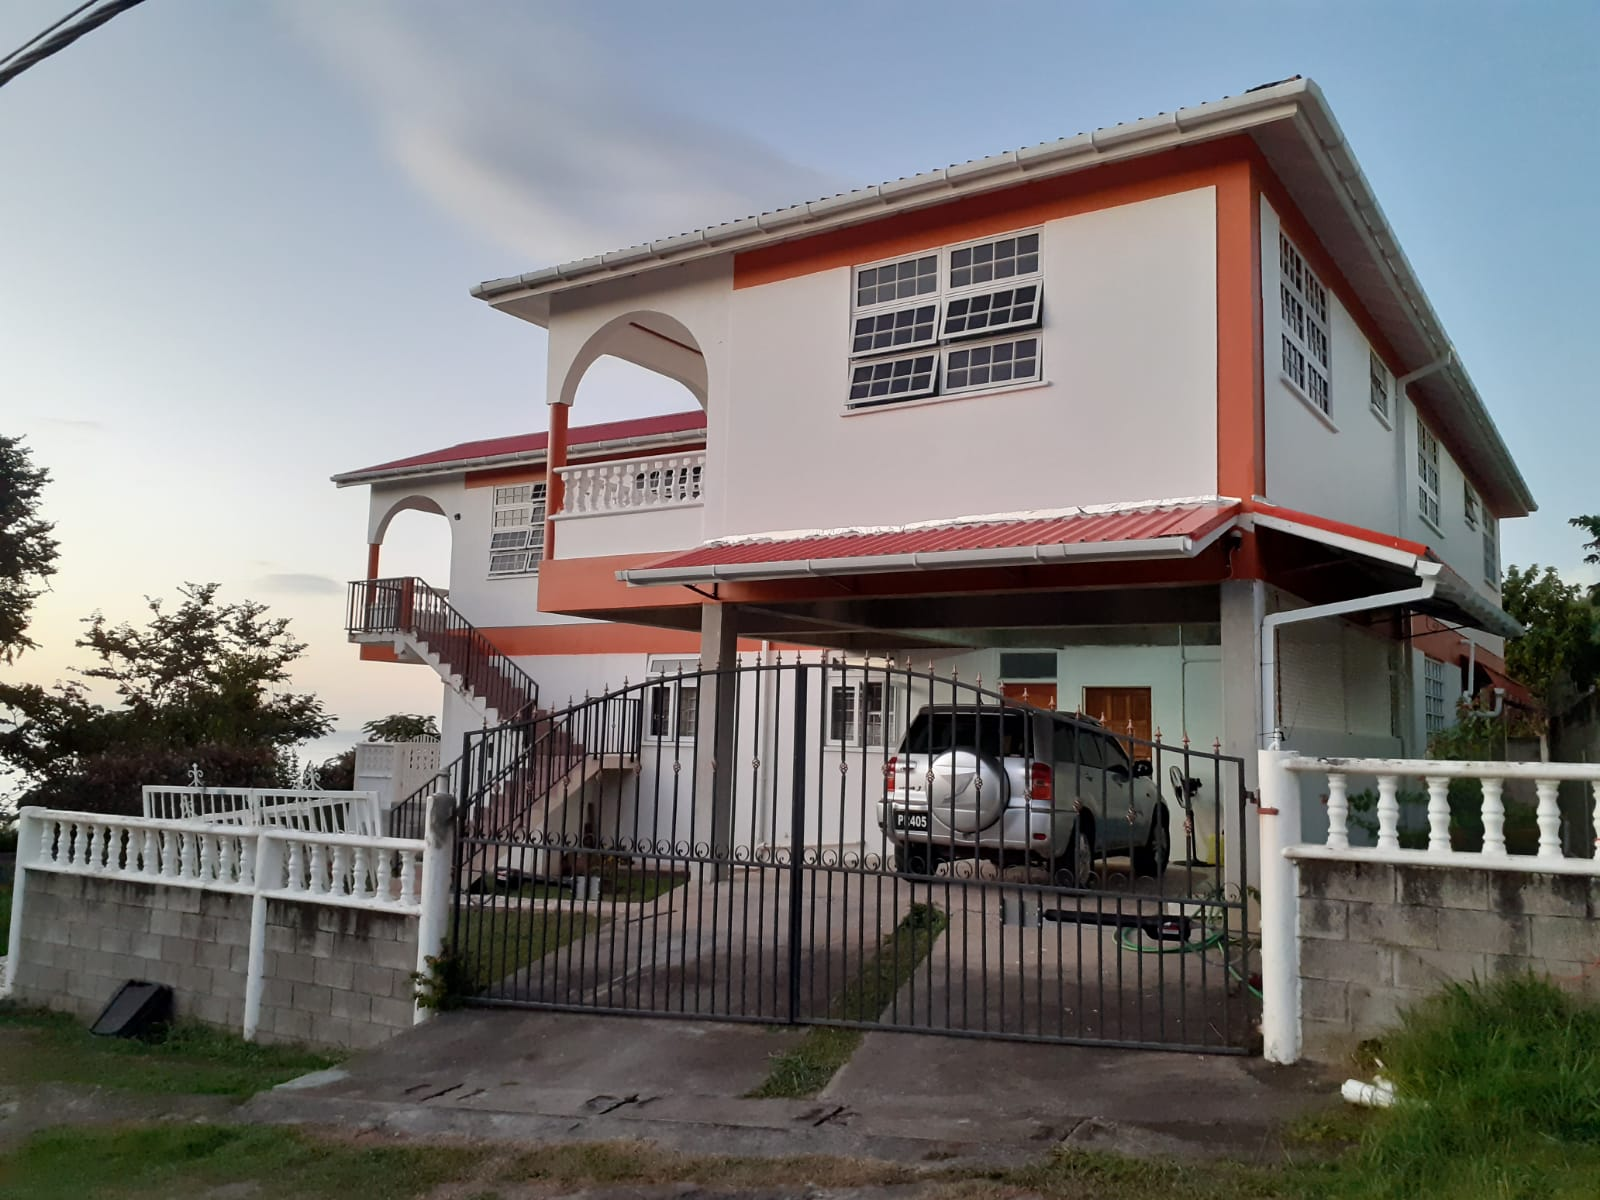 2 Bedroom Apartment For Rent In Wall House (RENTED OUT)